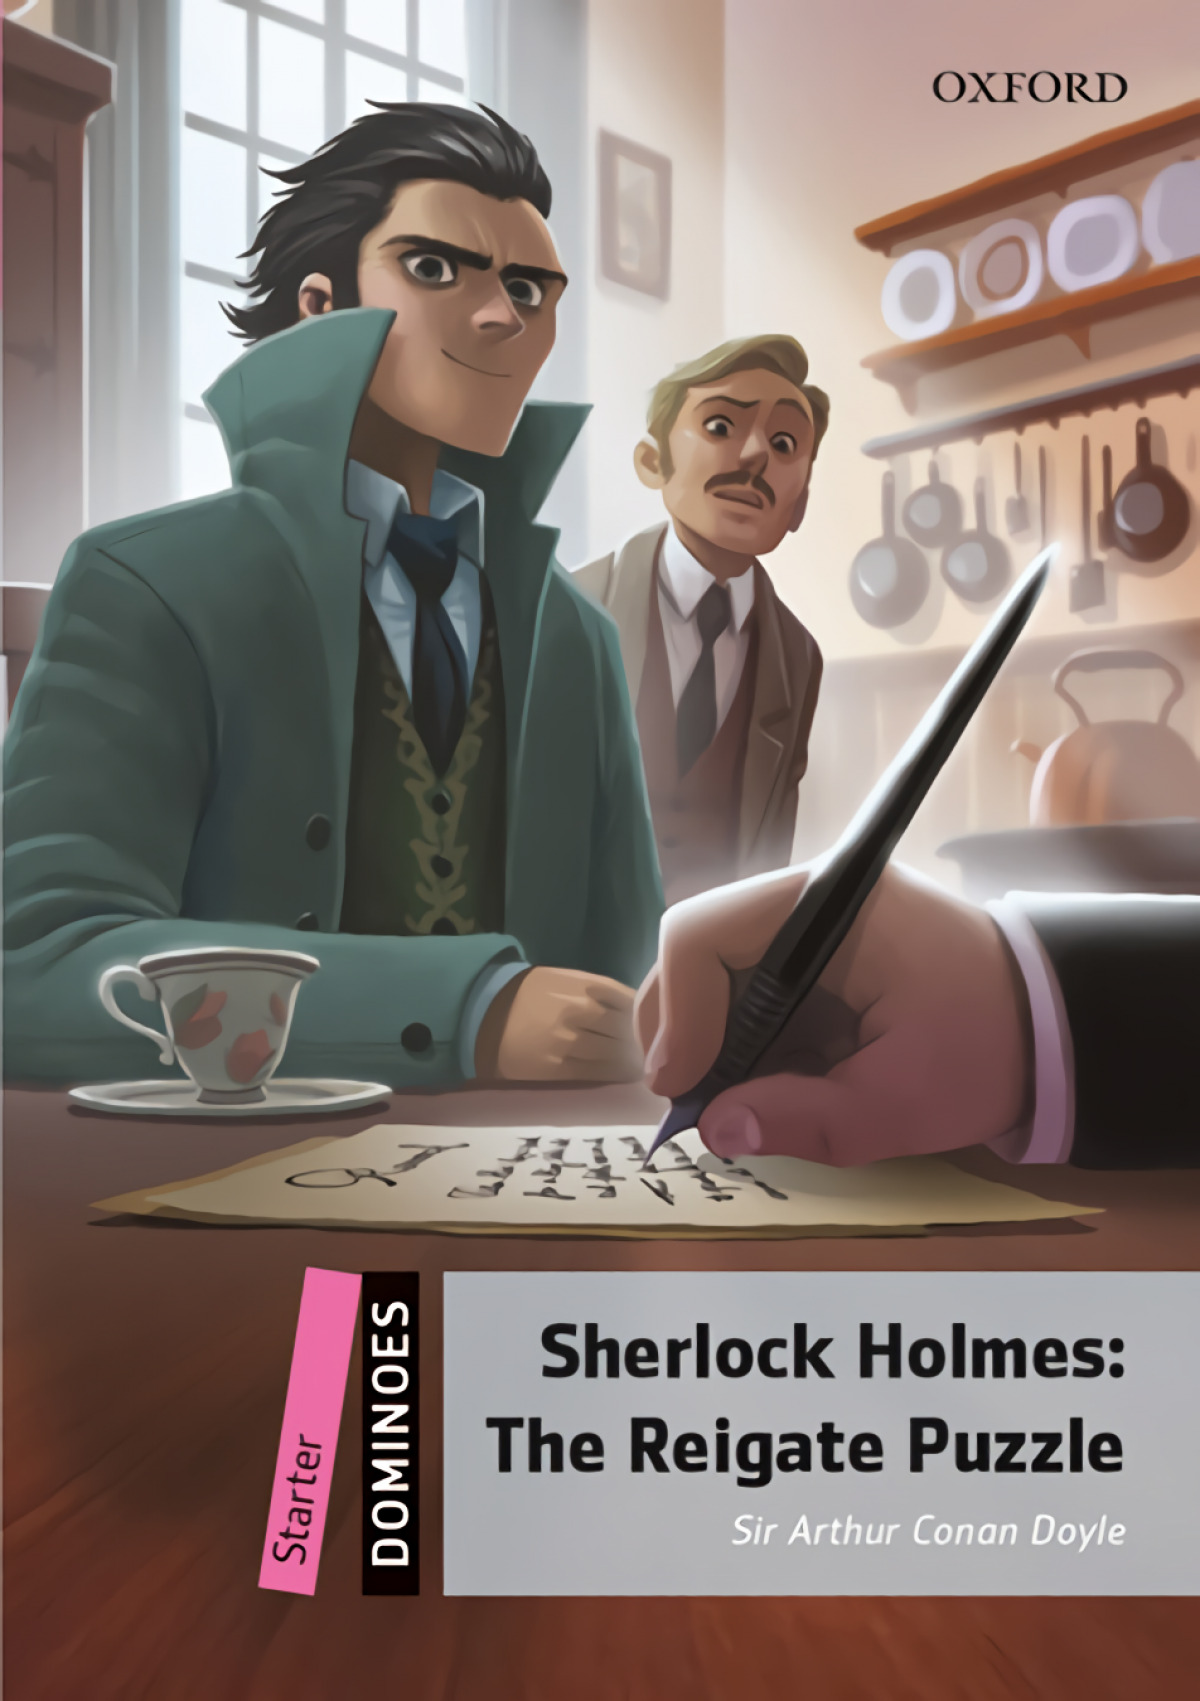 SHERLOCK HOLMES:THE REIGATE PUZZLE 9780194607445